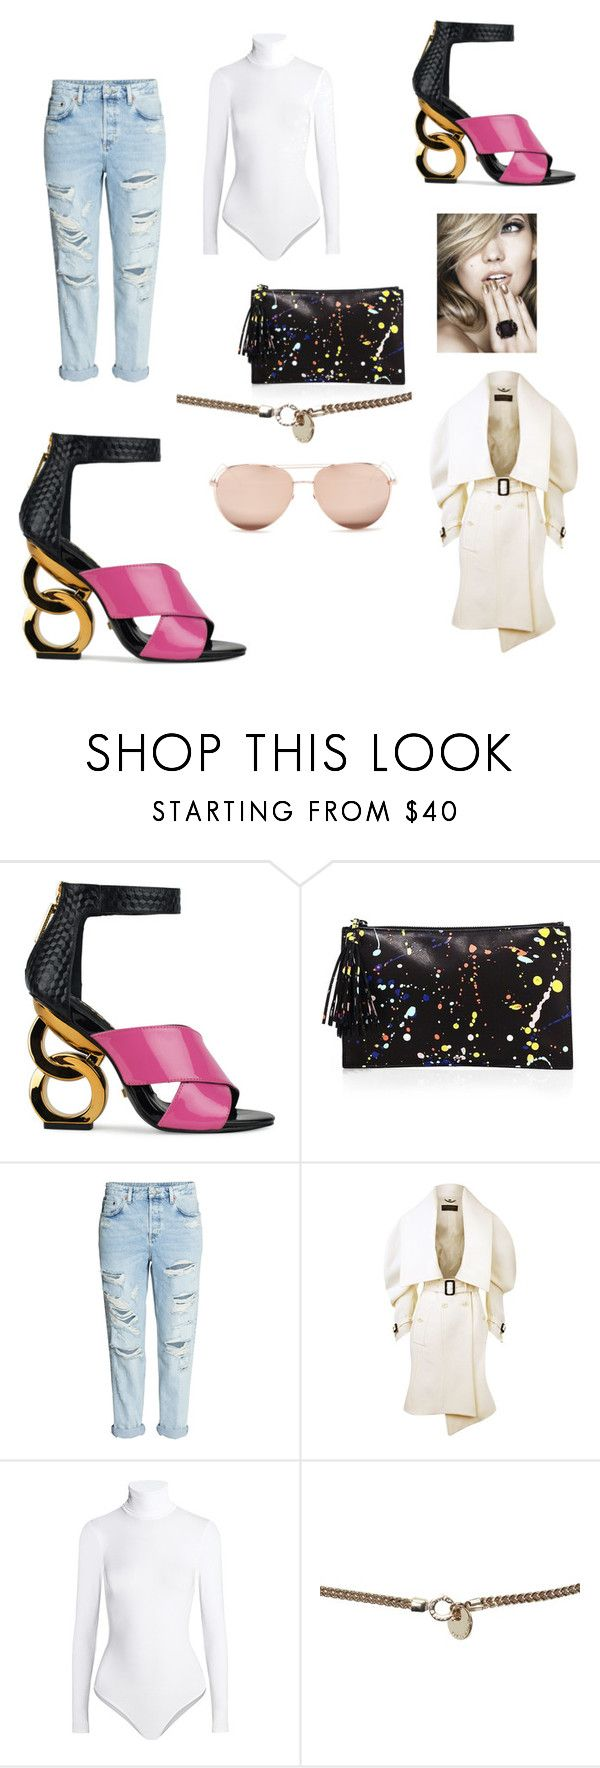 """on the go"" by ericap61720 ❤ liked on Polyvore featuring Kat Maconie, Loeffler Randall, Burberry, Wolford, Karen Millen and Linda Farrow"